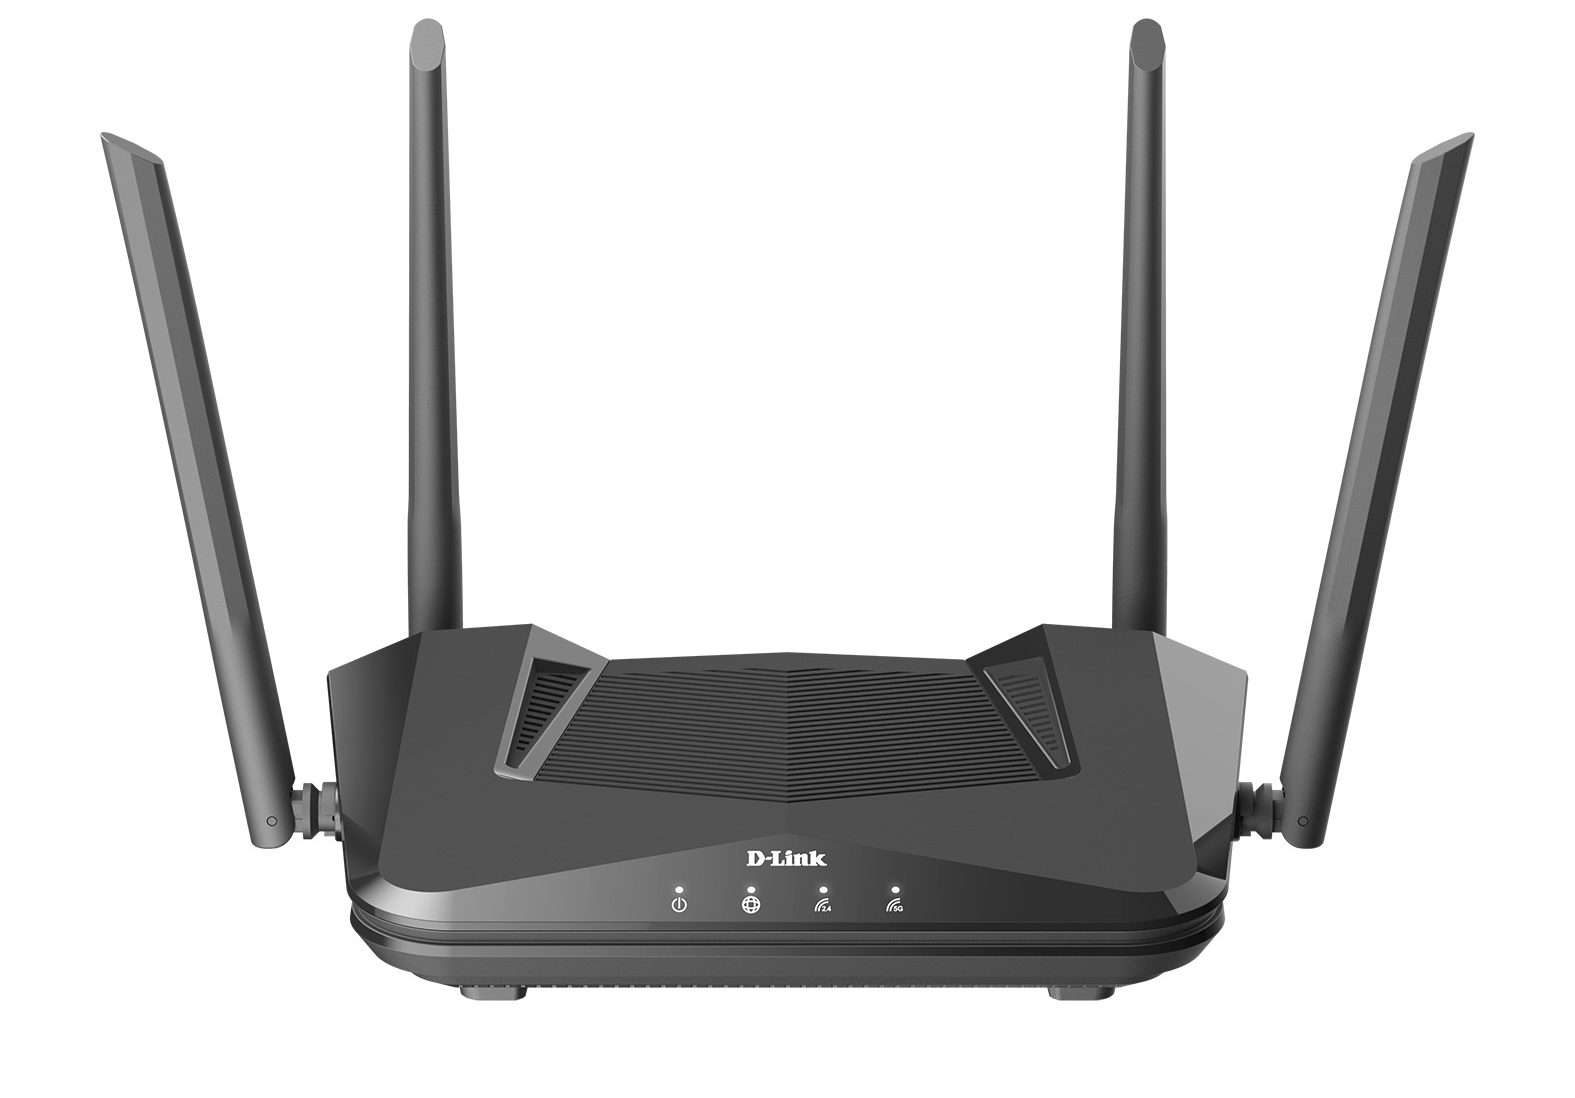 D-Link DIR-X1560 AX1500 Wi-Fi 6 Router review